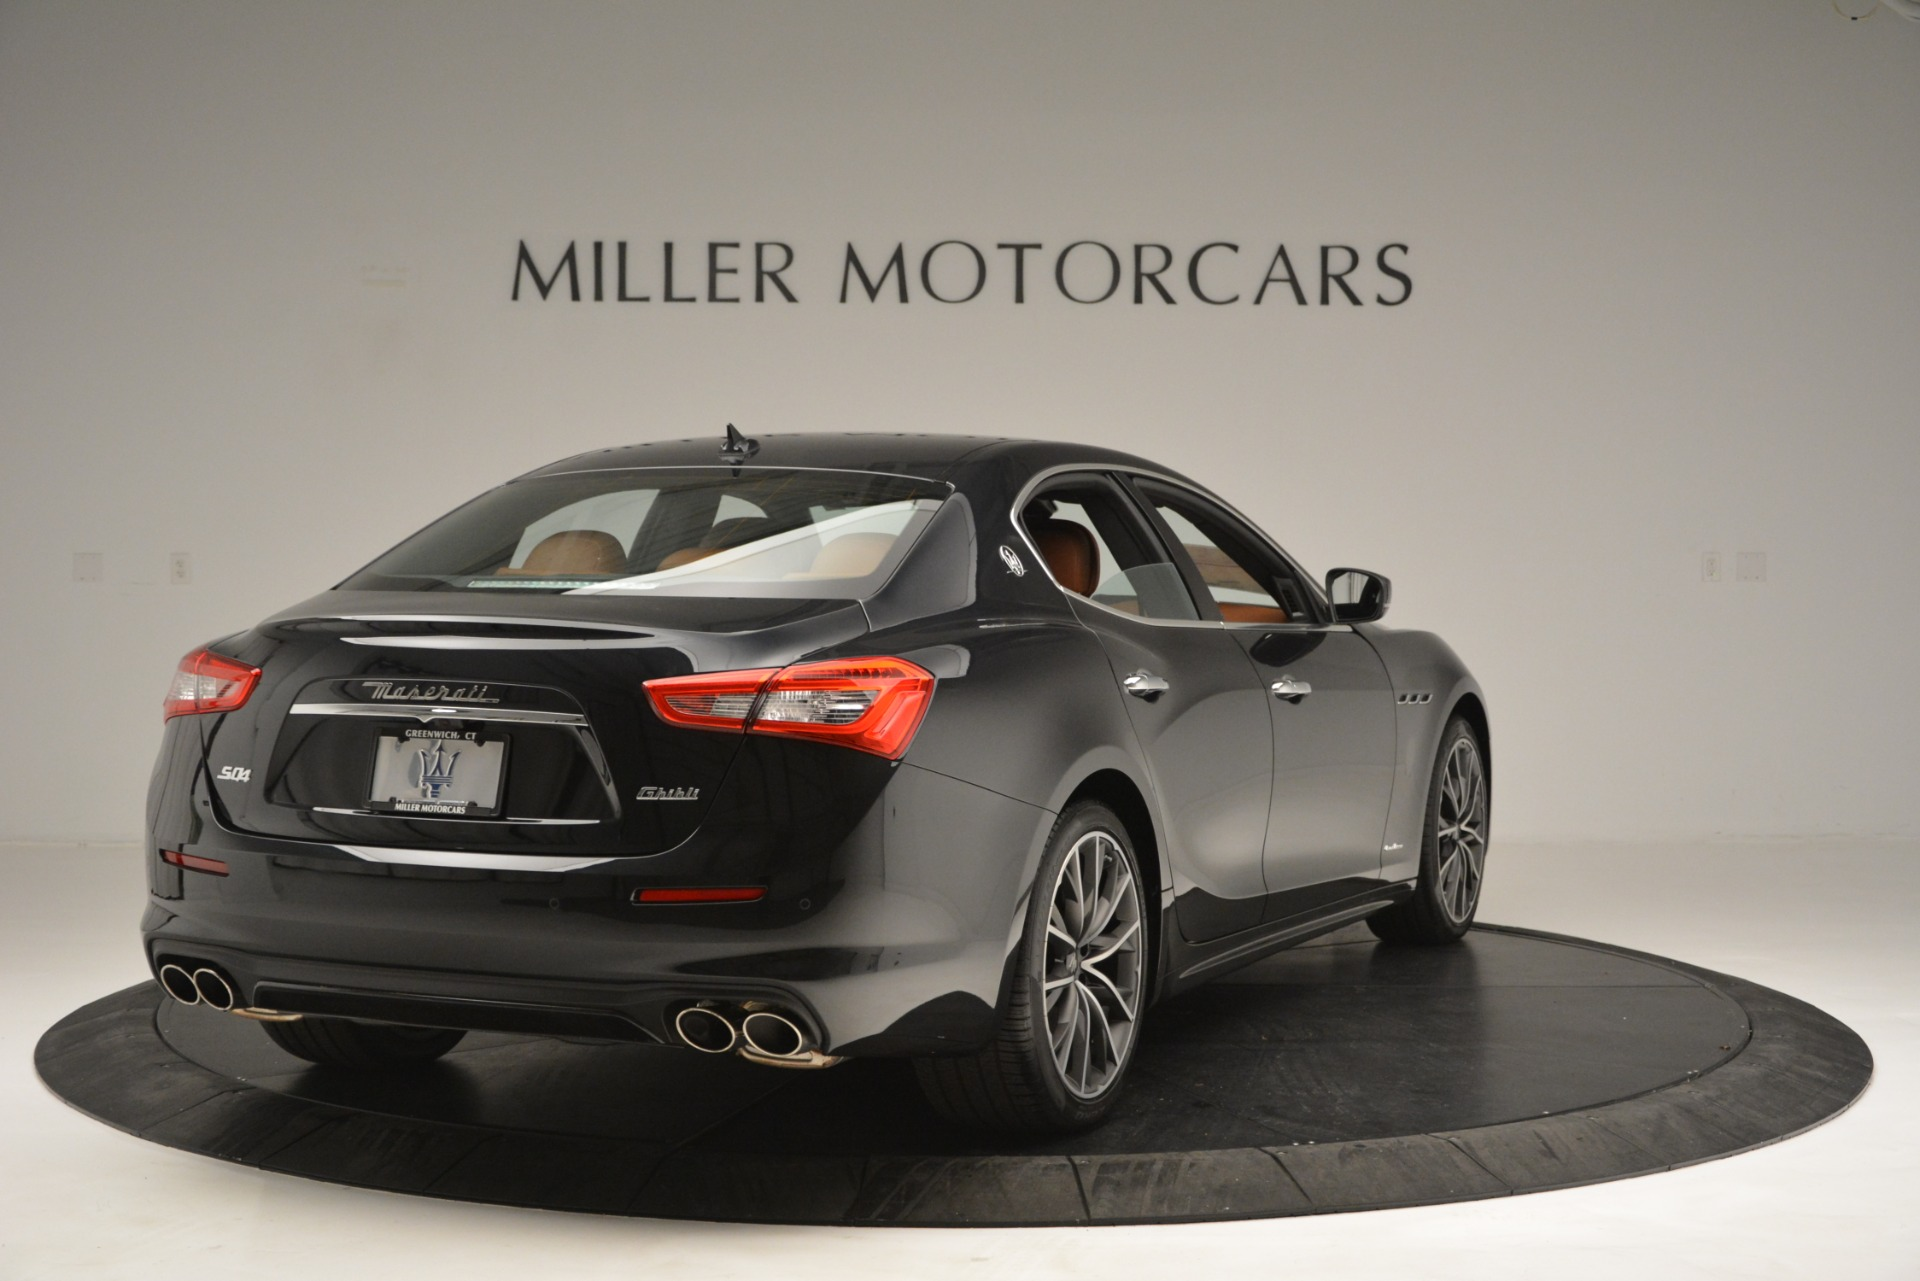 New 2019 Maserati Ghibli S Q4 GranLusso For Sale In Greenwich, CT. Alfa Romeo of Greenwich, M2223 2590_p7